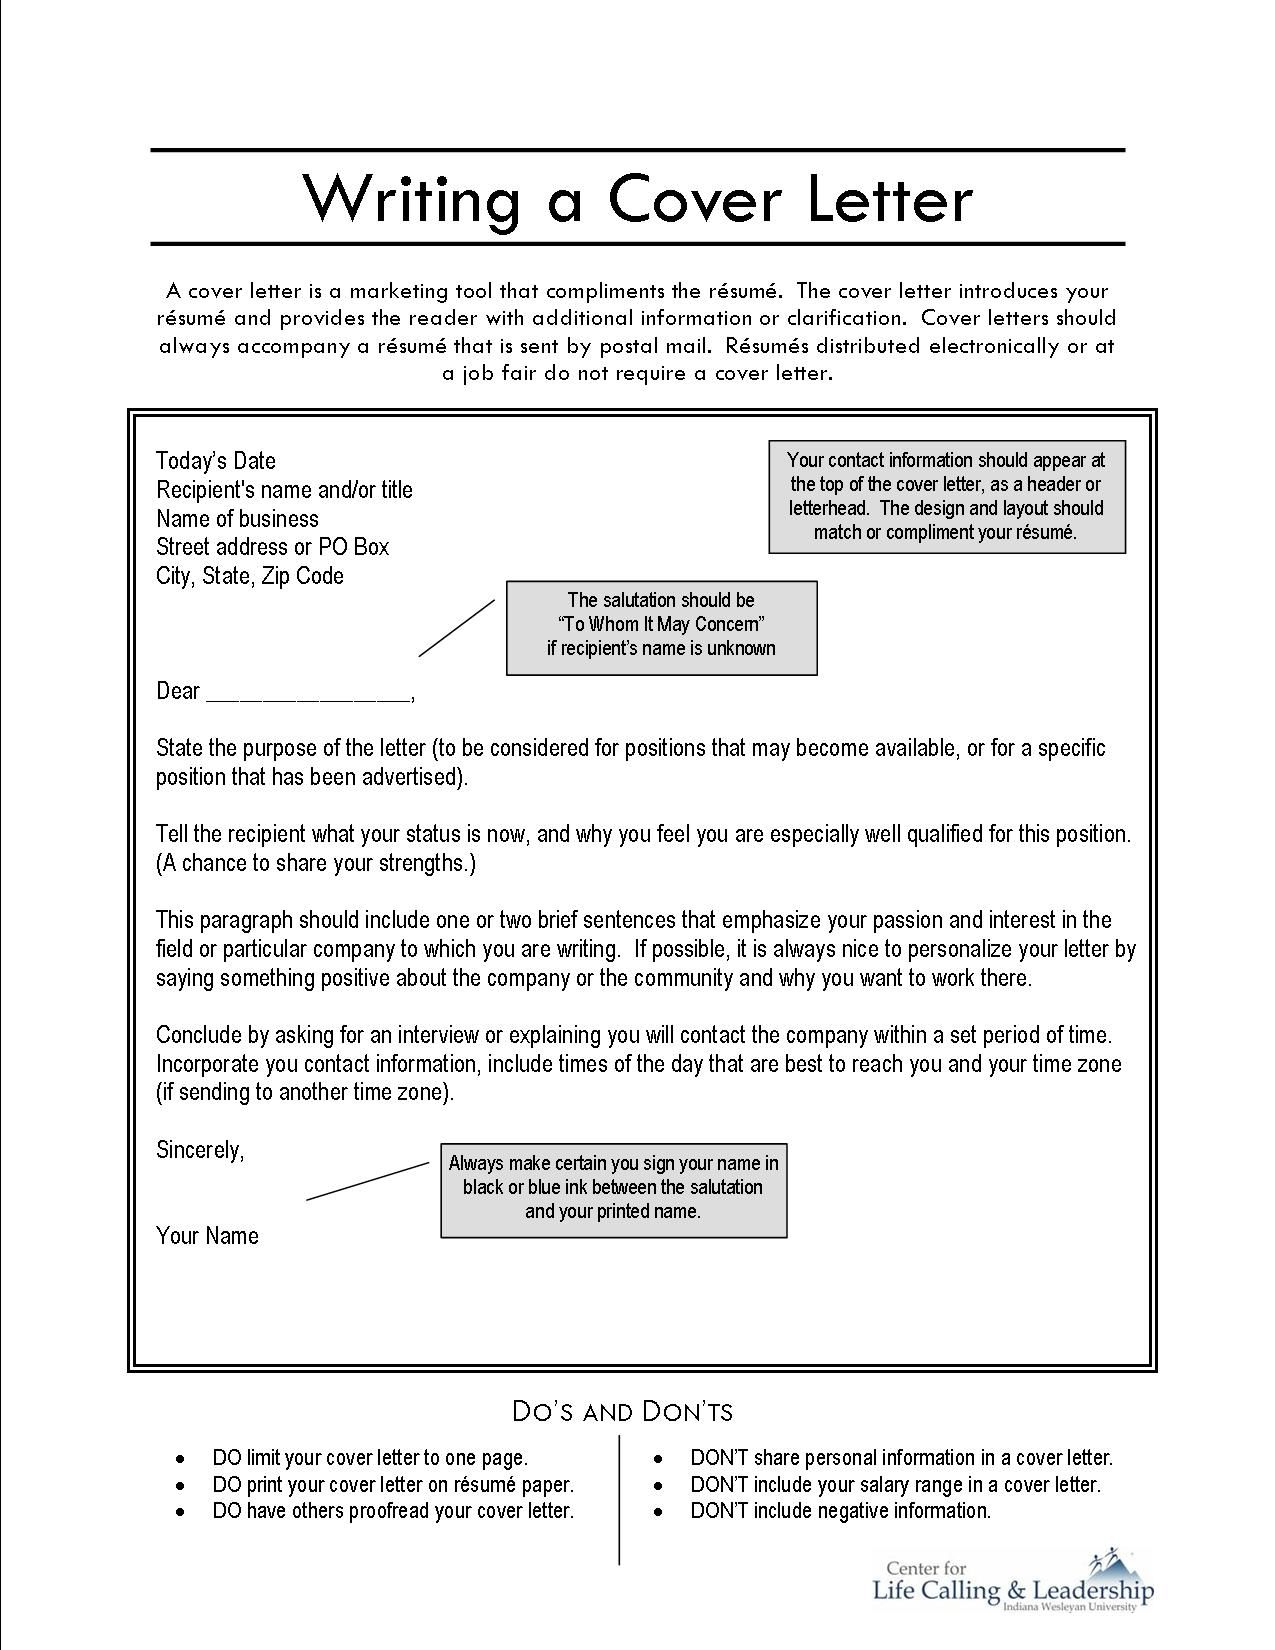 cover letter name example writing a cover letter application resources 21137